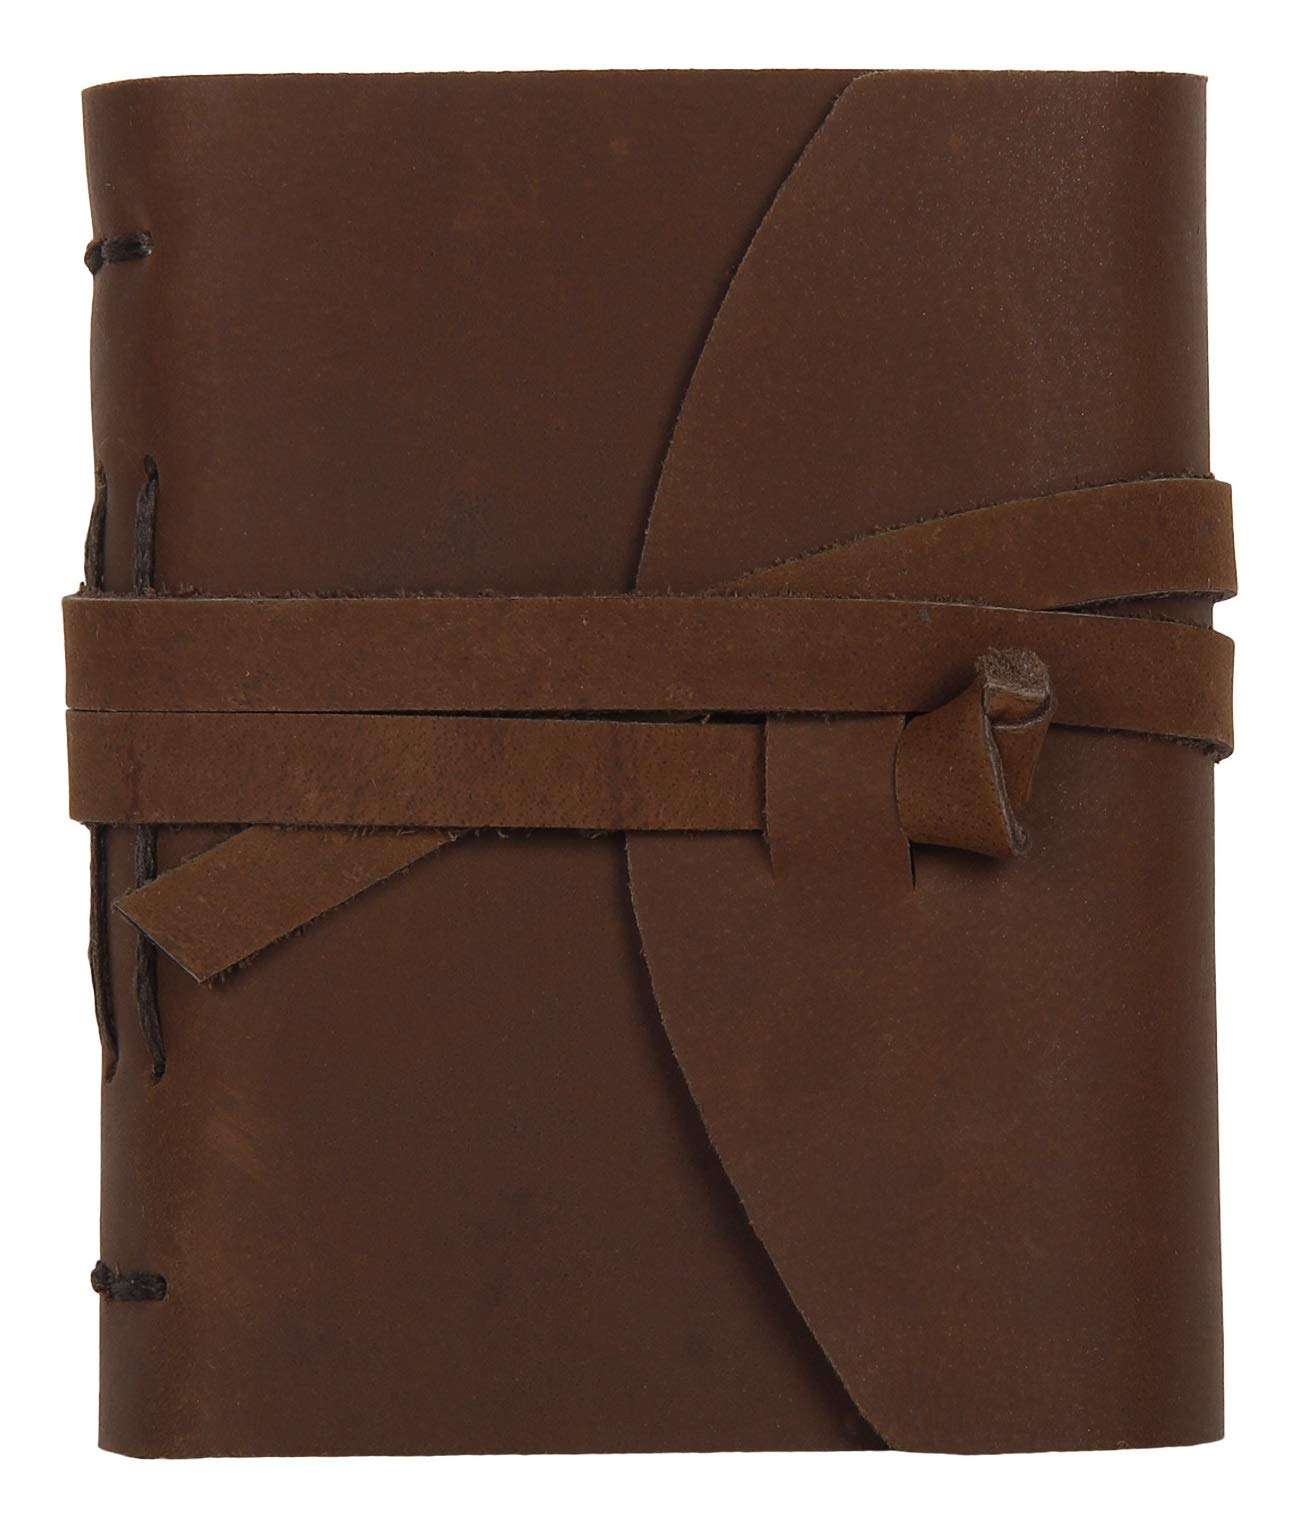 Leather Notebook Journal Diary - College Planner & Field Notes Notebook for Men & Women by Rustic Town